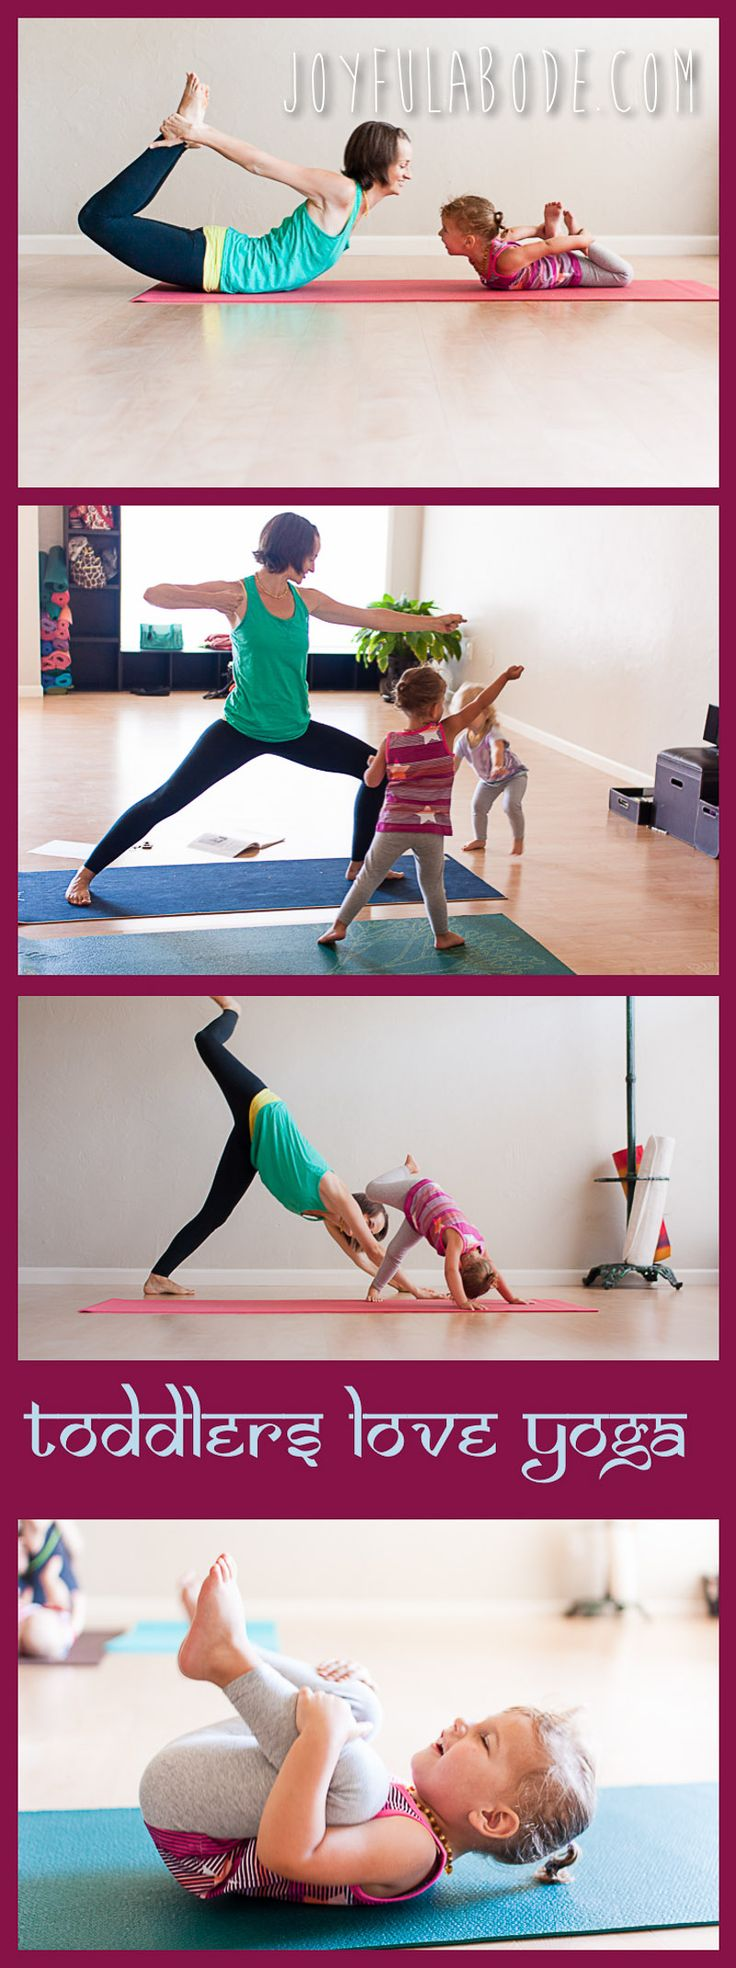 Ive started doing yoga every morning with my 3 year old daughter before work & s